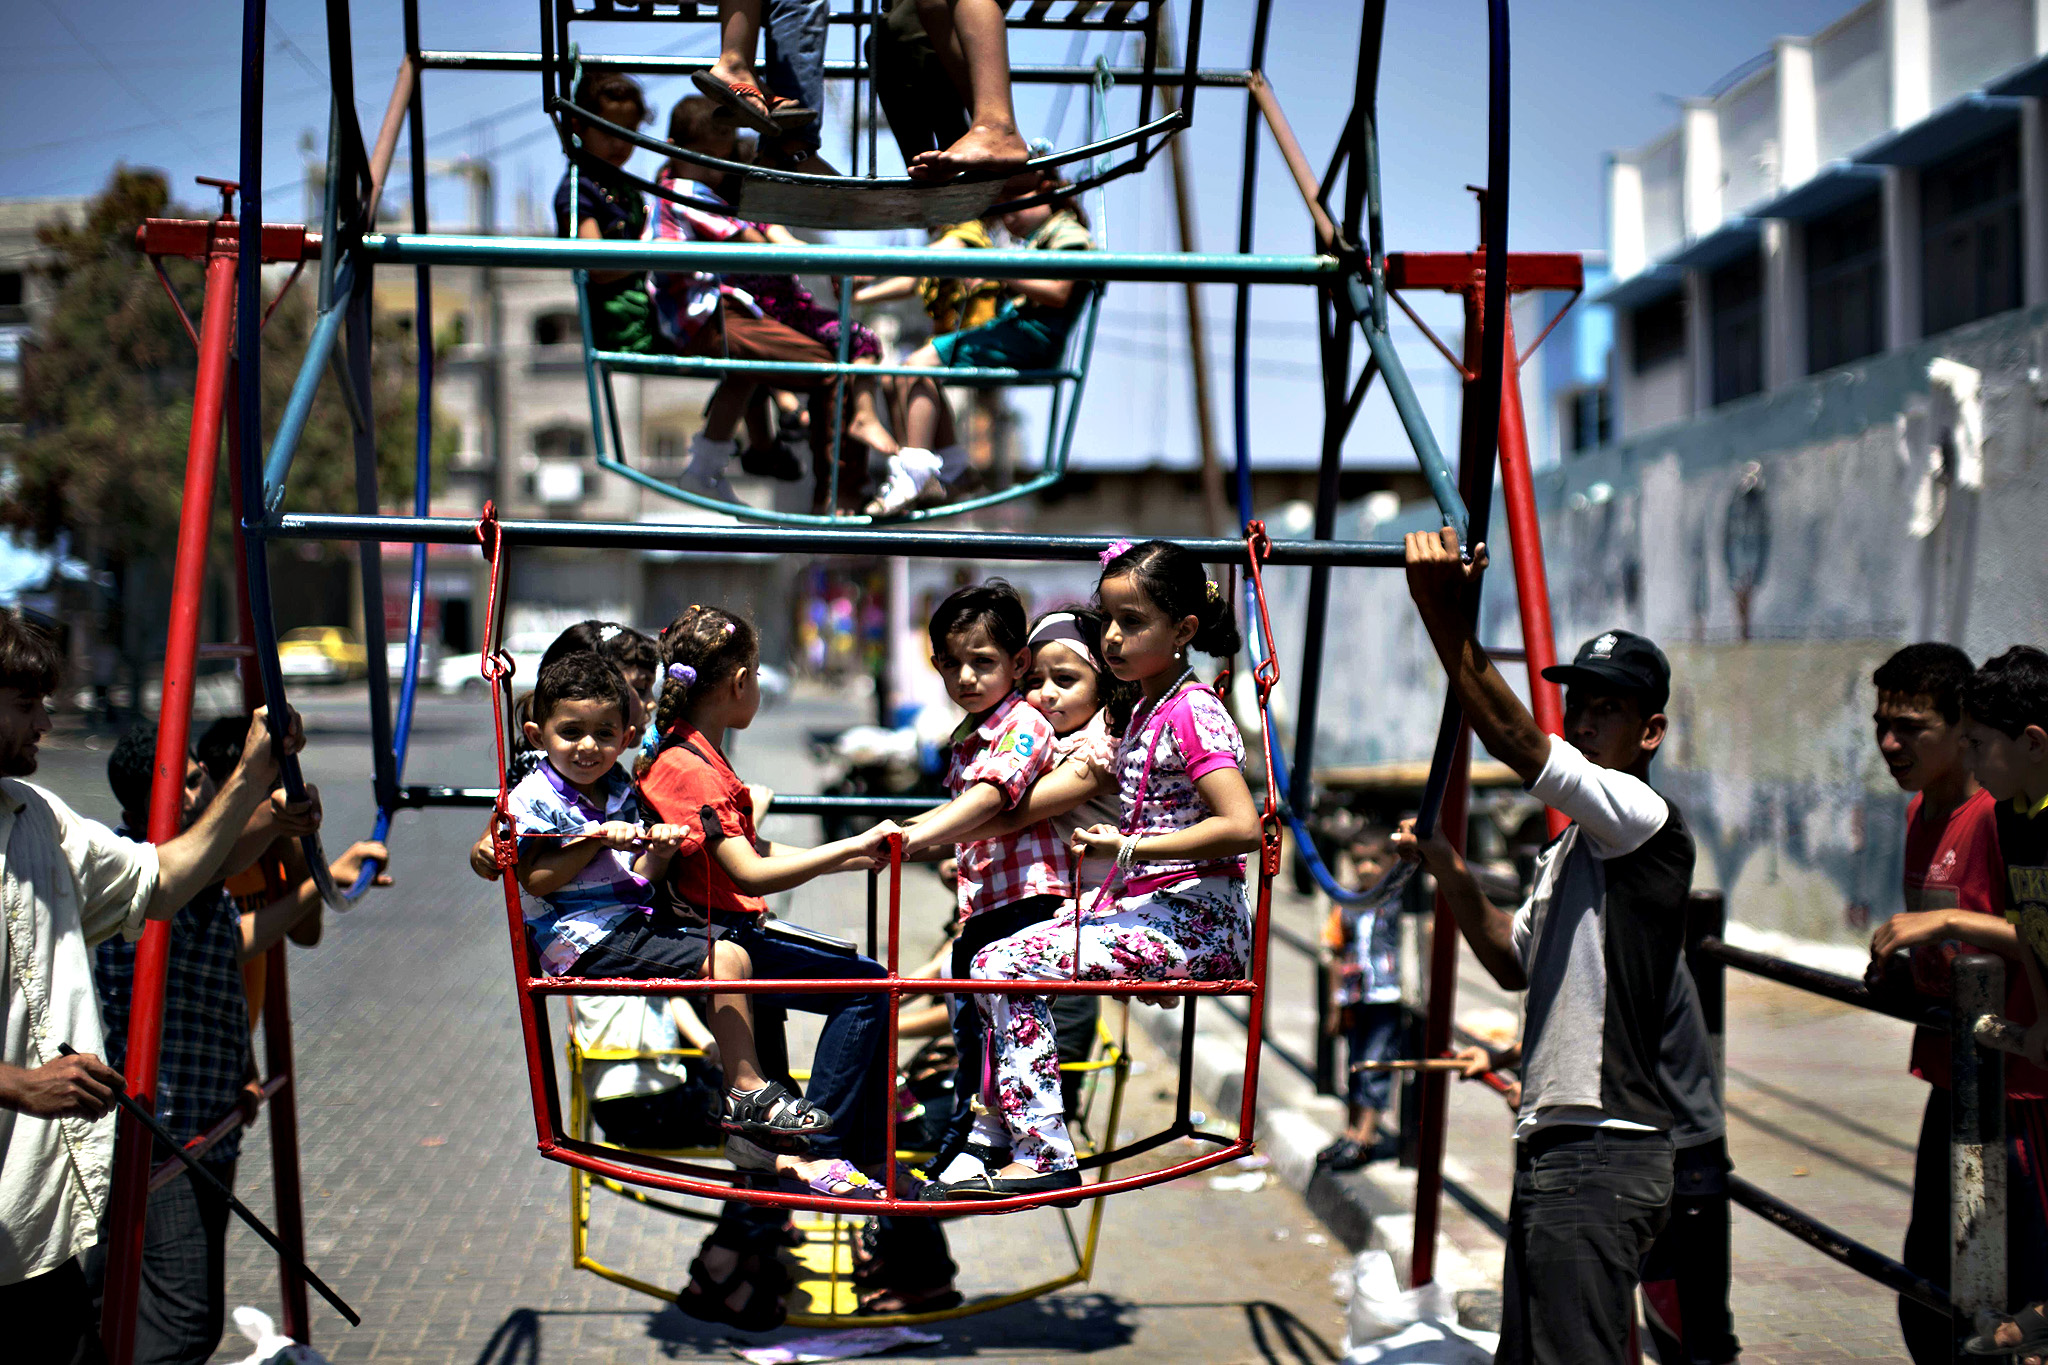 Palestinian children play on a mini ferris wheel outside an United Nations (UN) school in Jabalia in the northern Gaza strip, on July 28, 2014, on the beginning of the Muslim Eid festival ending the month-long fast of Ramadan. Israeli tank fire killed a four-year-old boy in the northern Gaza Strip, the first death since the two sides began observing an unofficial lull, Palestinian medics said.